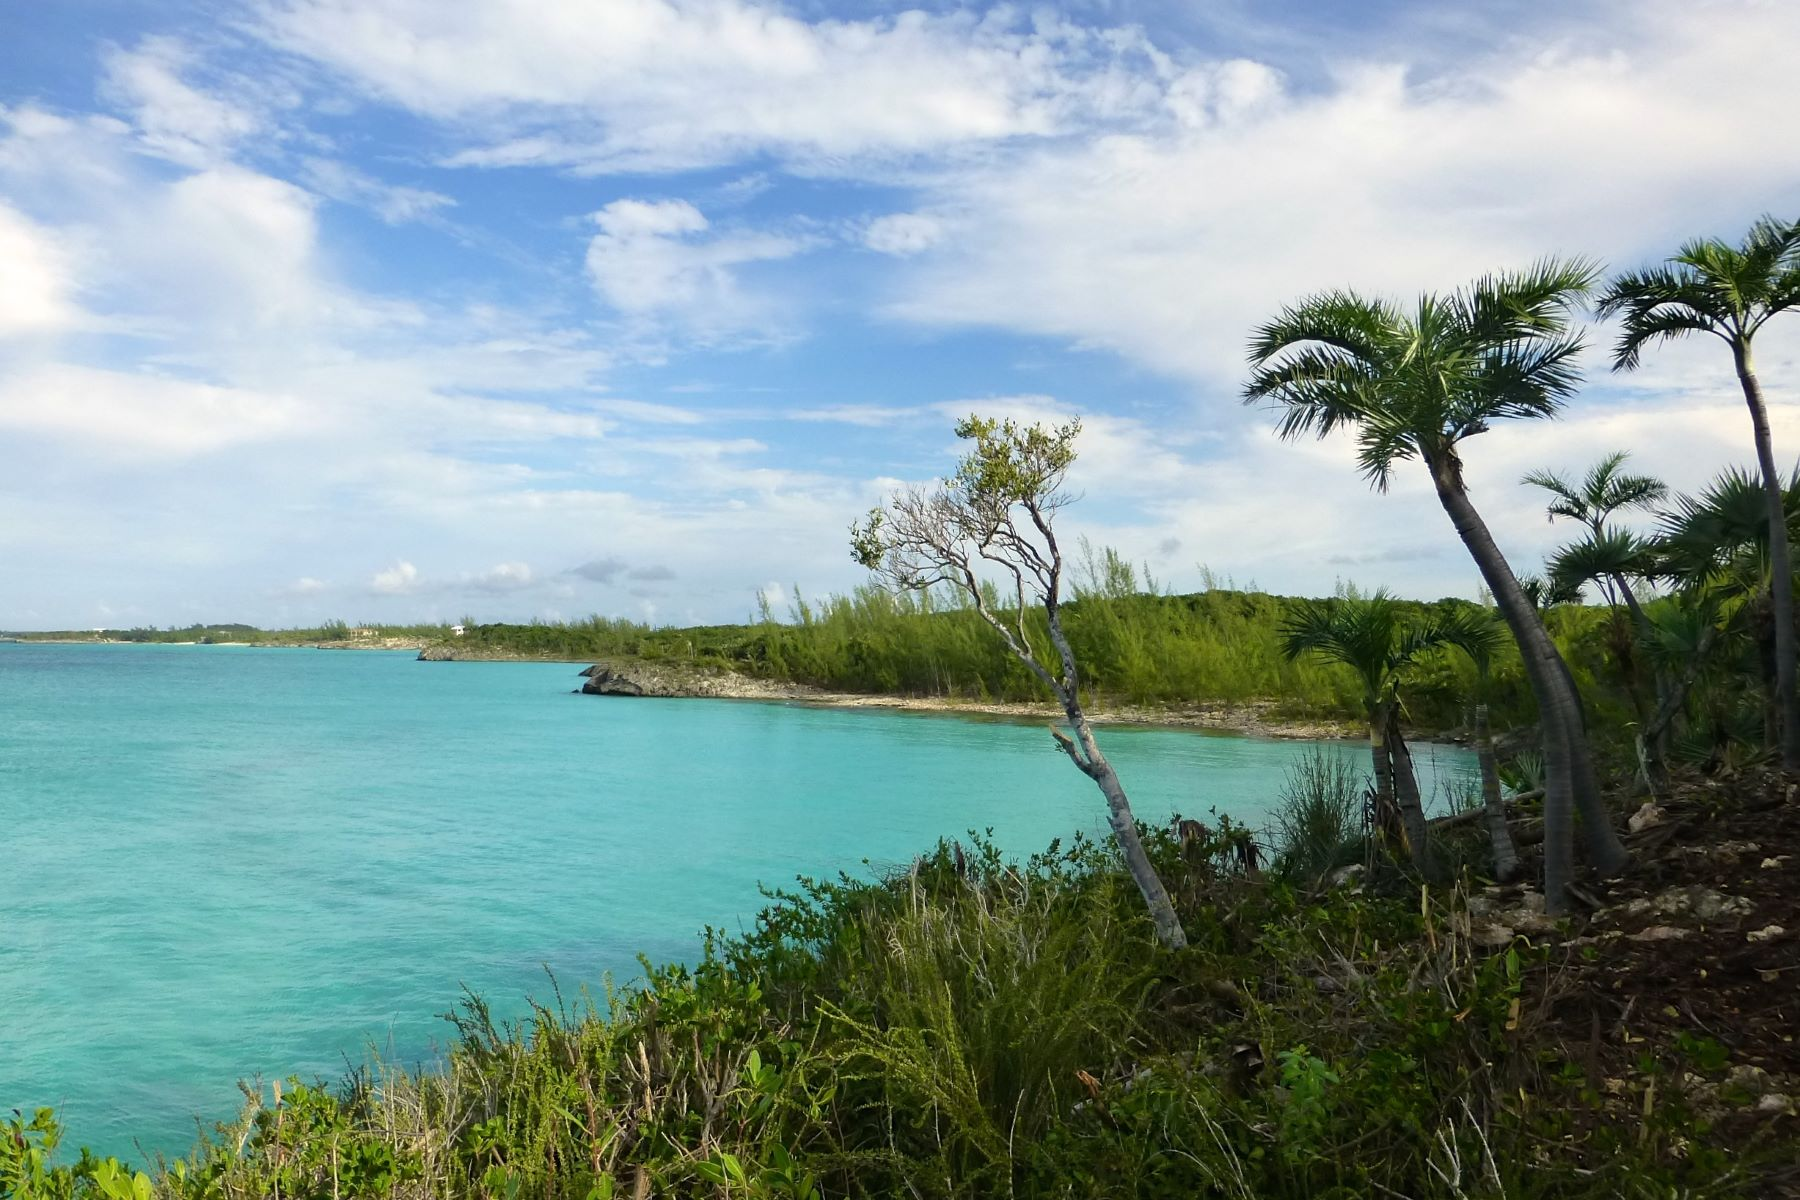 Terreno por un Venta en Secluded Seaside Acreage Gregory Town, Eleuthera, Bahamas